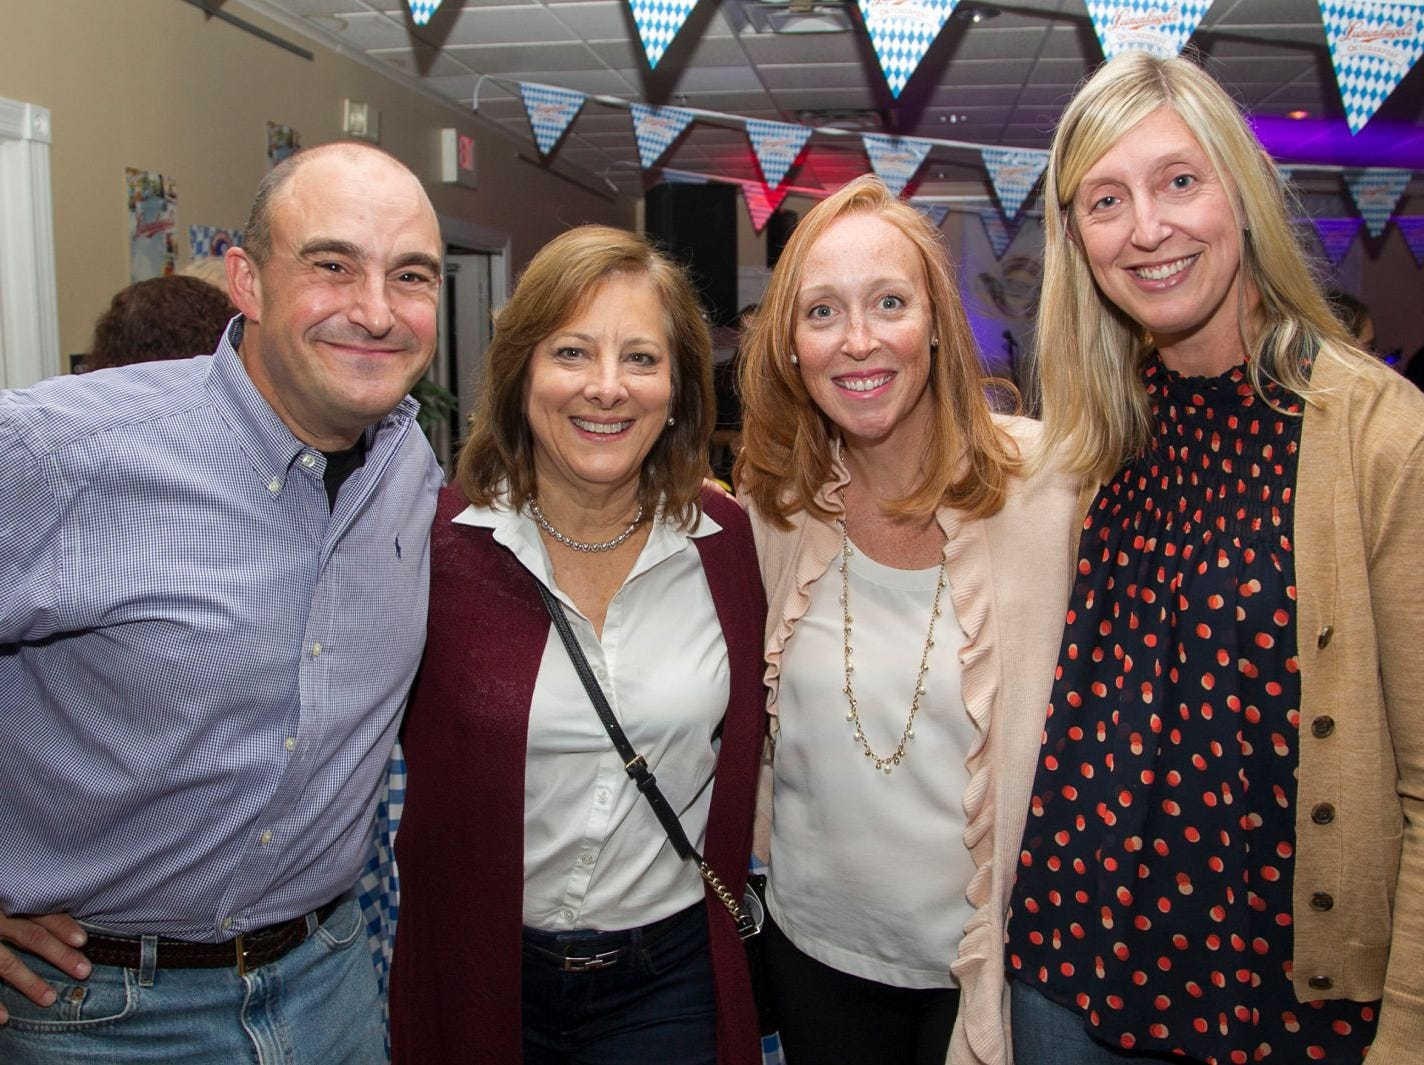 Paul Semindinger (Hanes Principal), Mary Ferreri (Orchard Principal), Caroline Hoffman (Willard Principal), Margy Leininger (Travell Pricipal). Ridgewood Education Foundation's 2018 Oktoberfest at the Hermitage. 09/29/2018